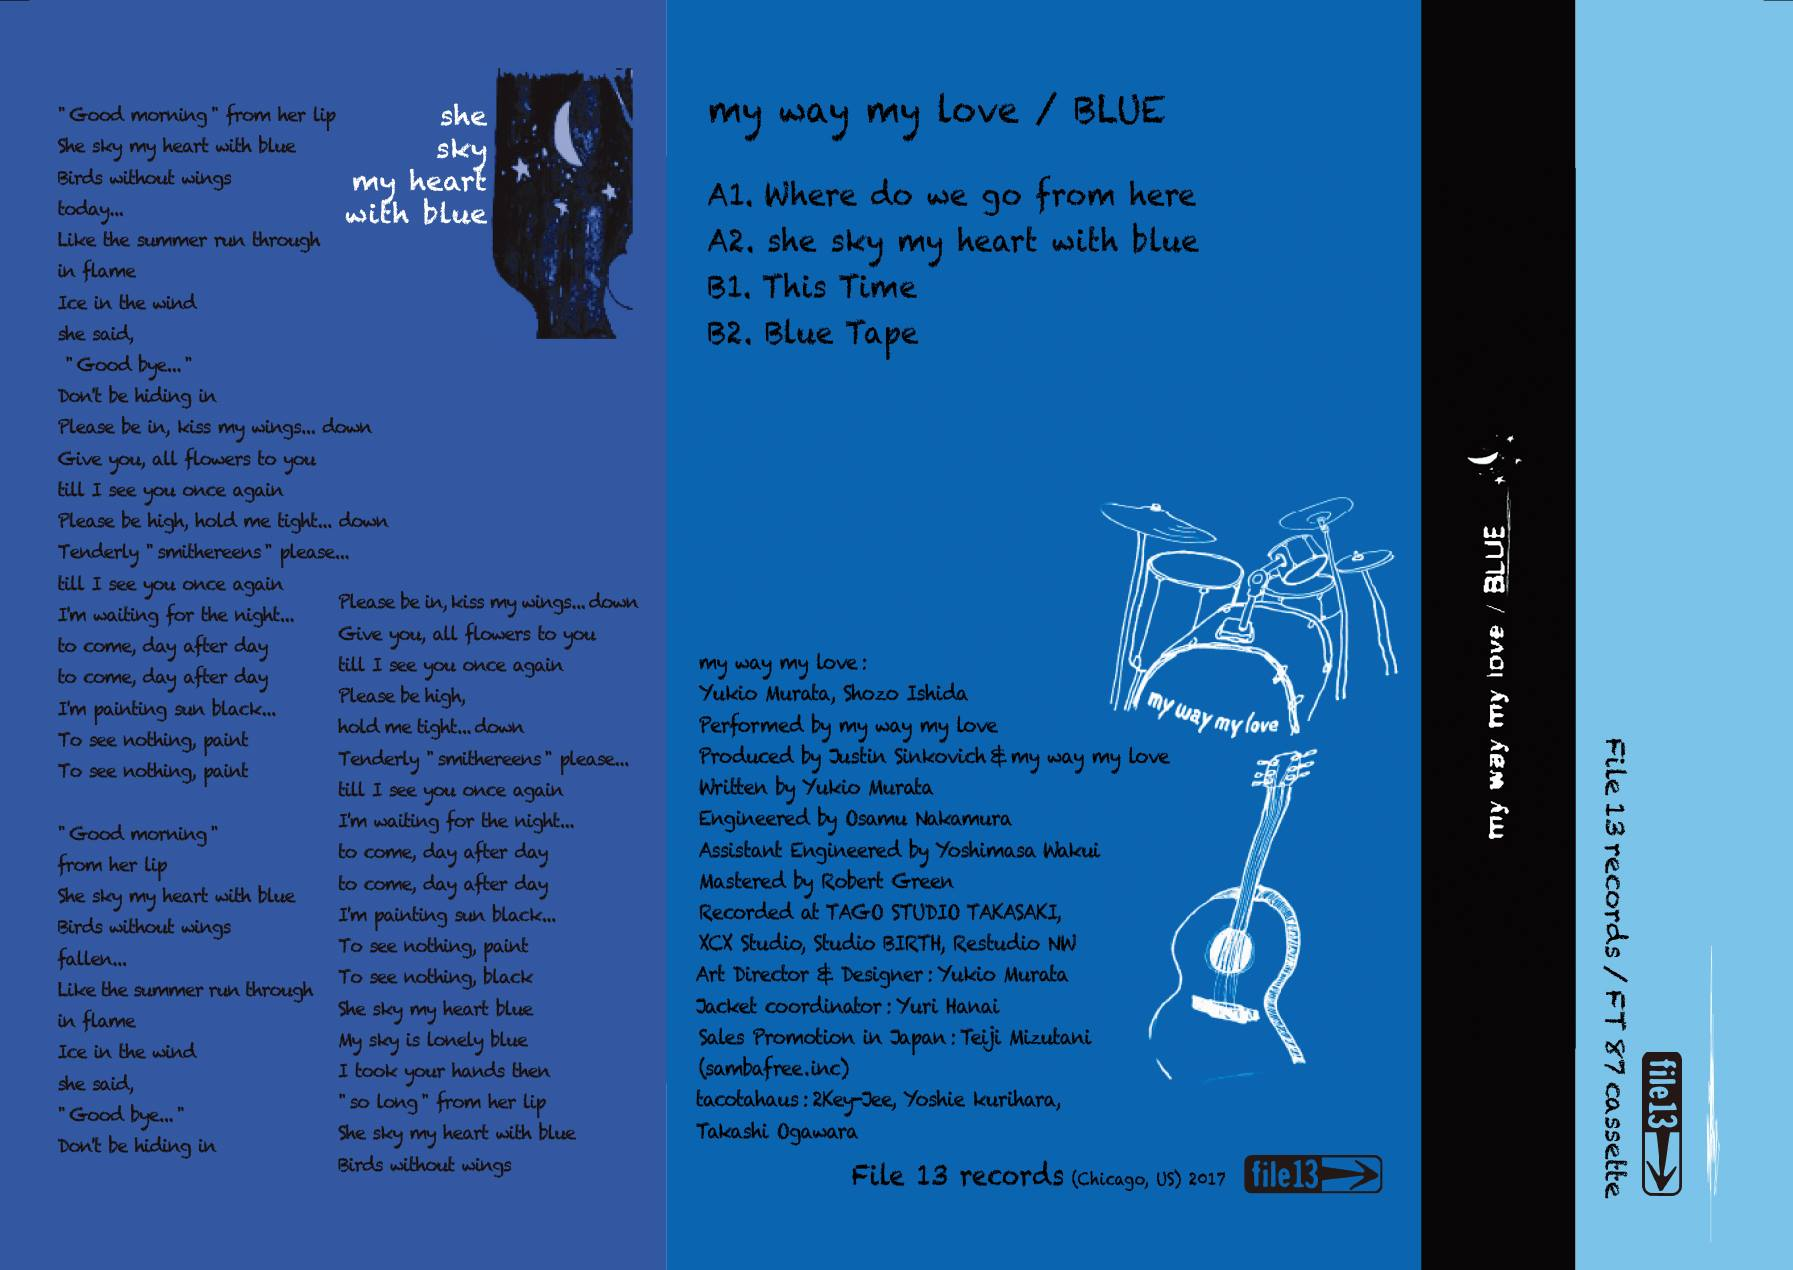 Review : My Way My Love - BLUE(2017)